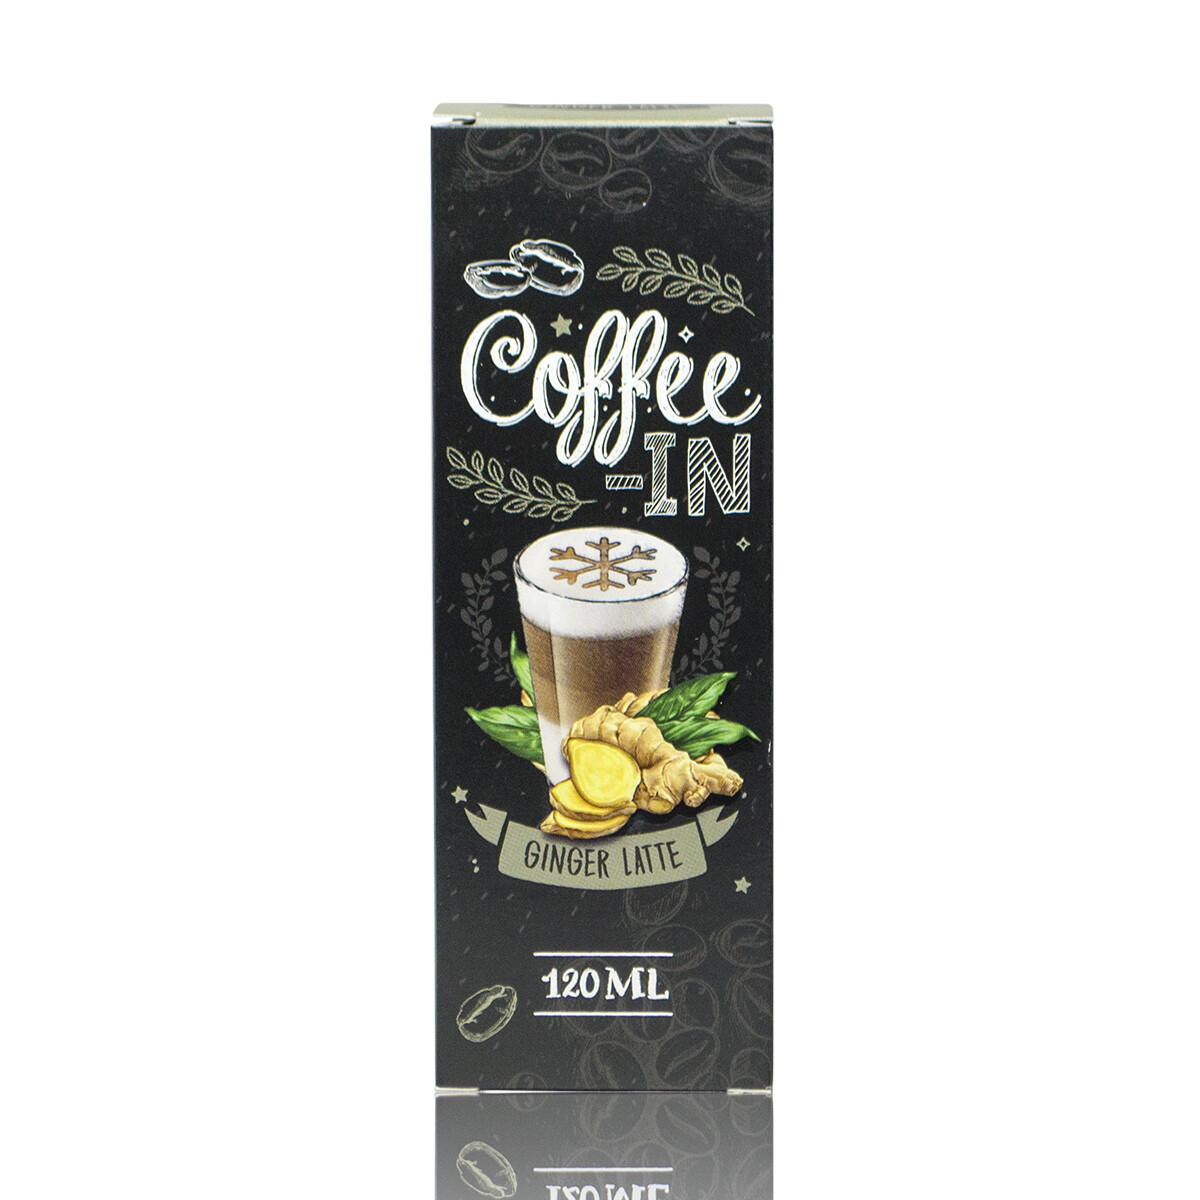 COFFE-IN: GINGER LATTE 120ML 3MG